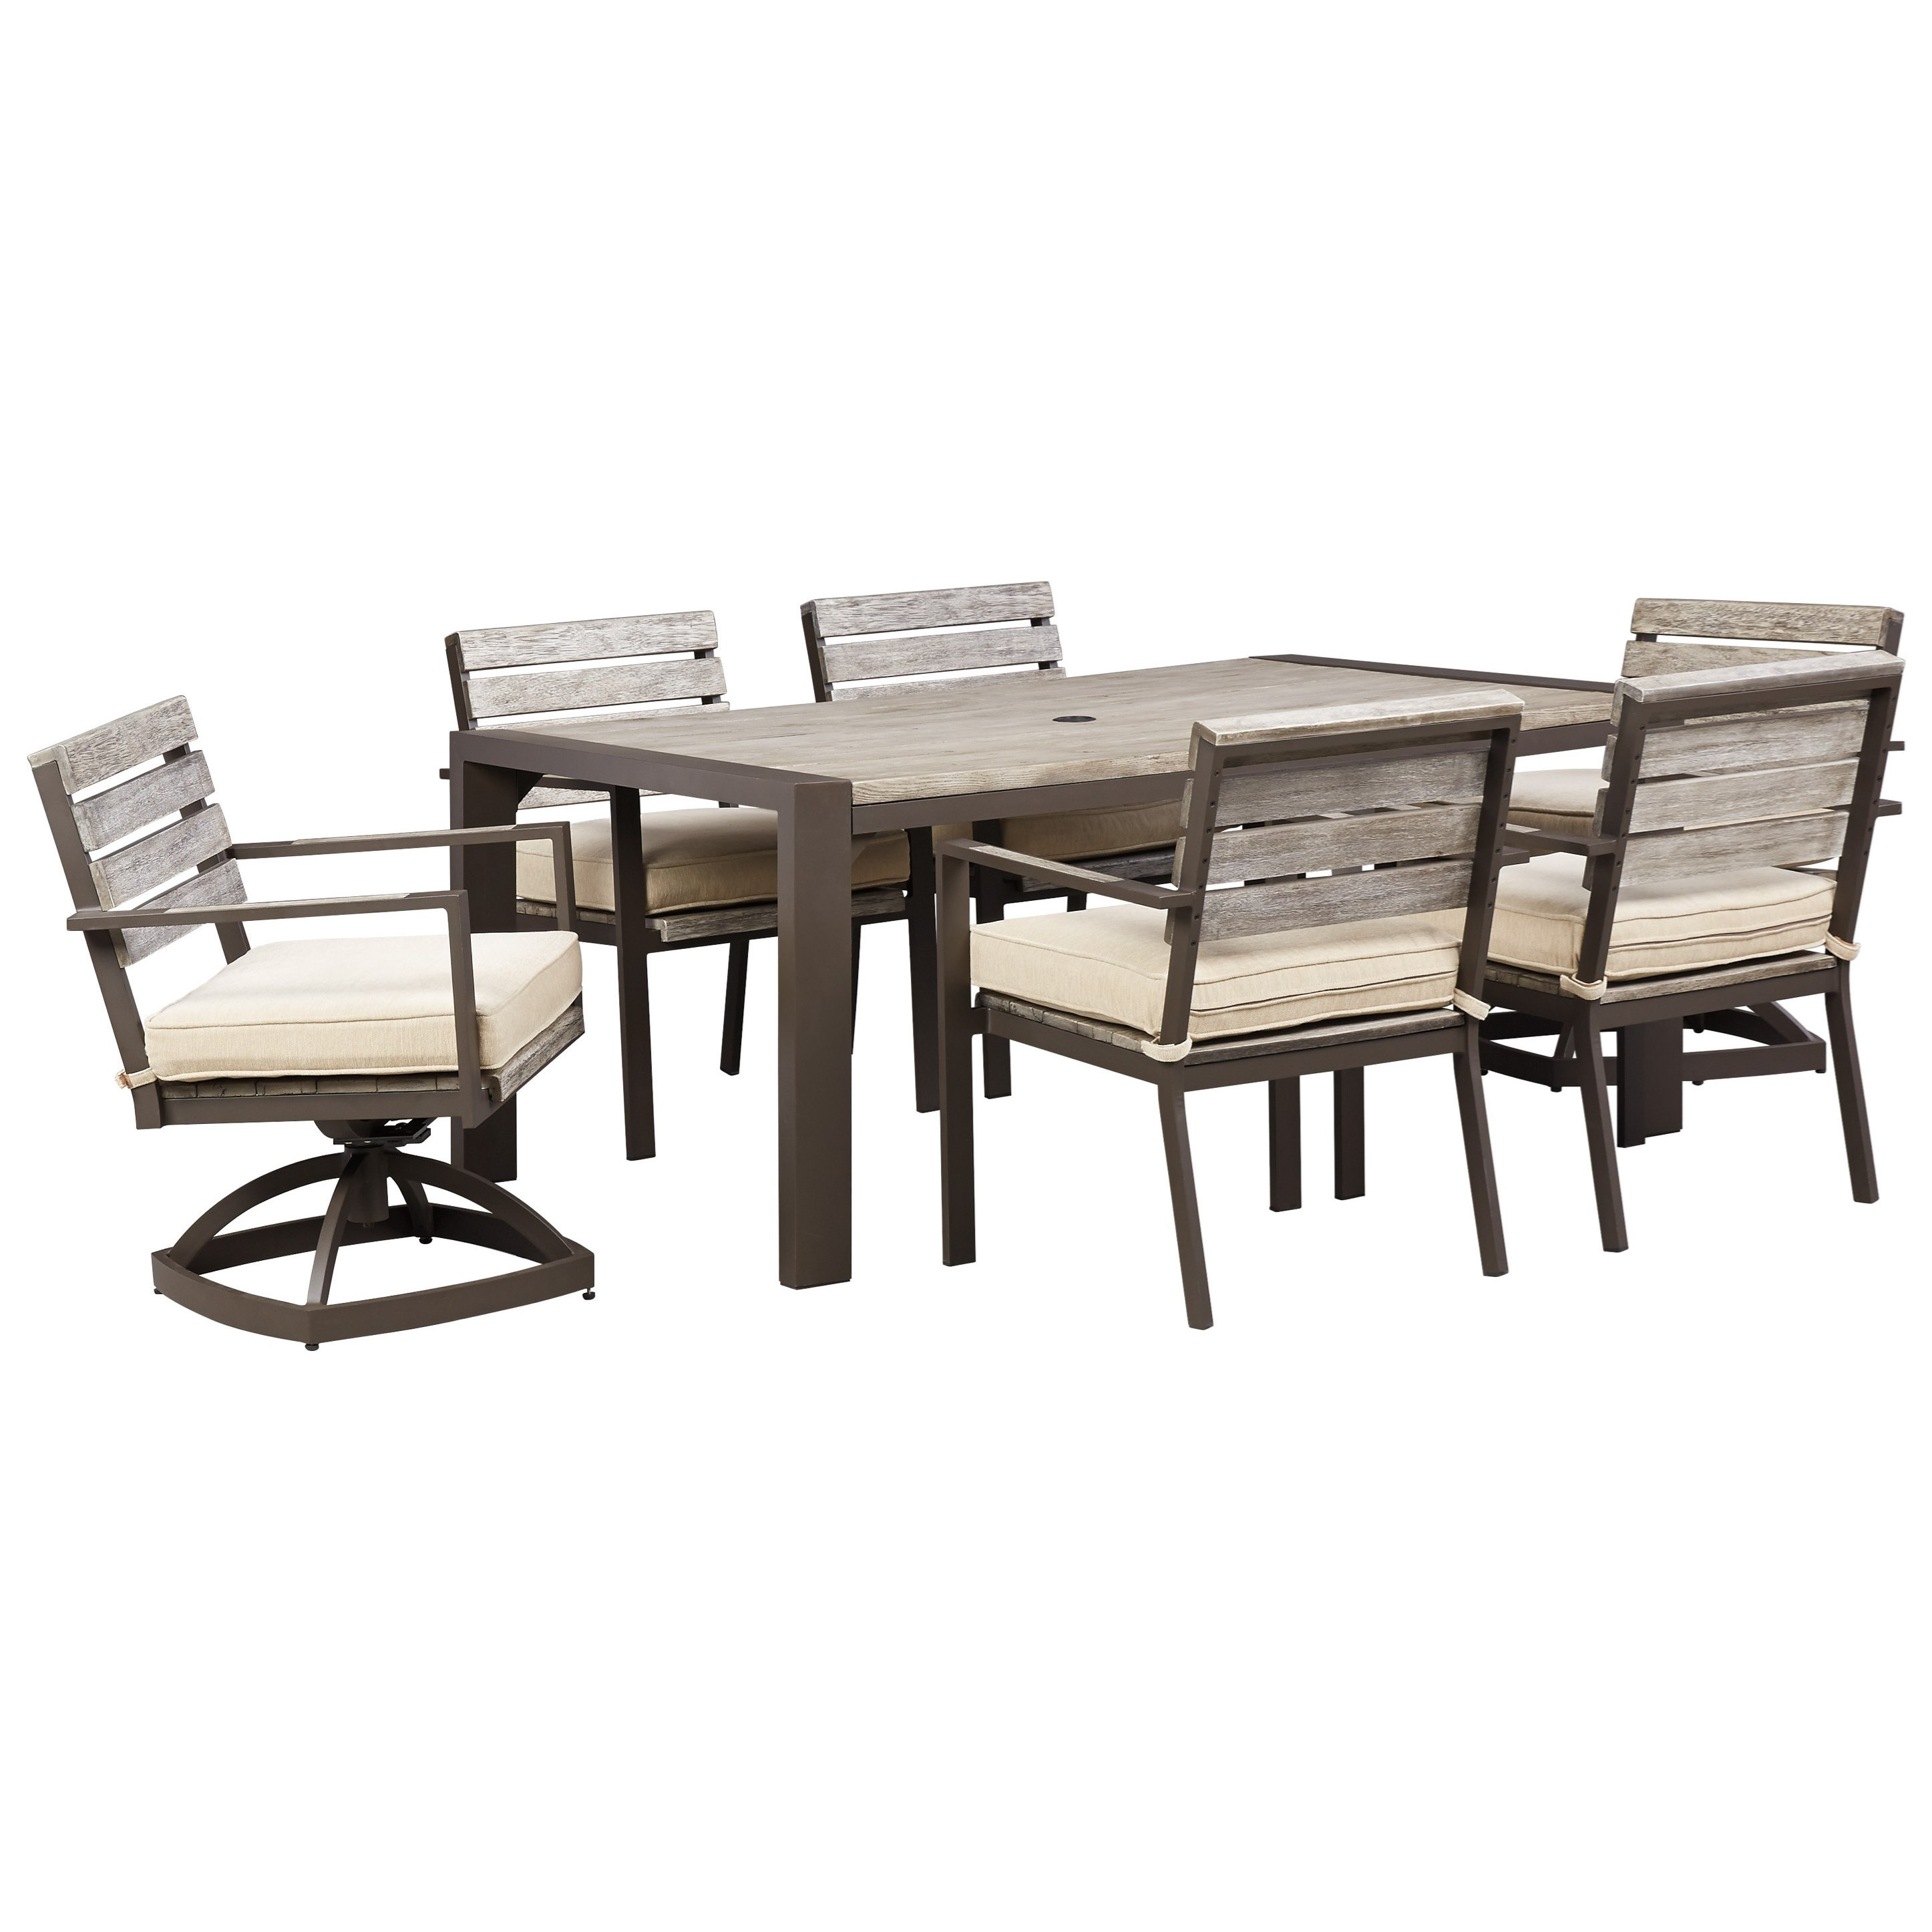 Signature Design By Ashley Peachstone Outdoor Dining Table Set With Swivel Chairs Value City